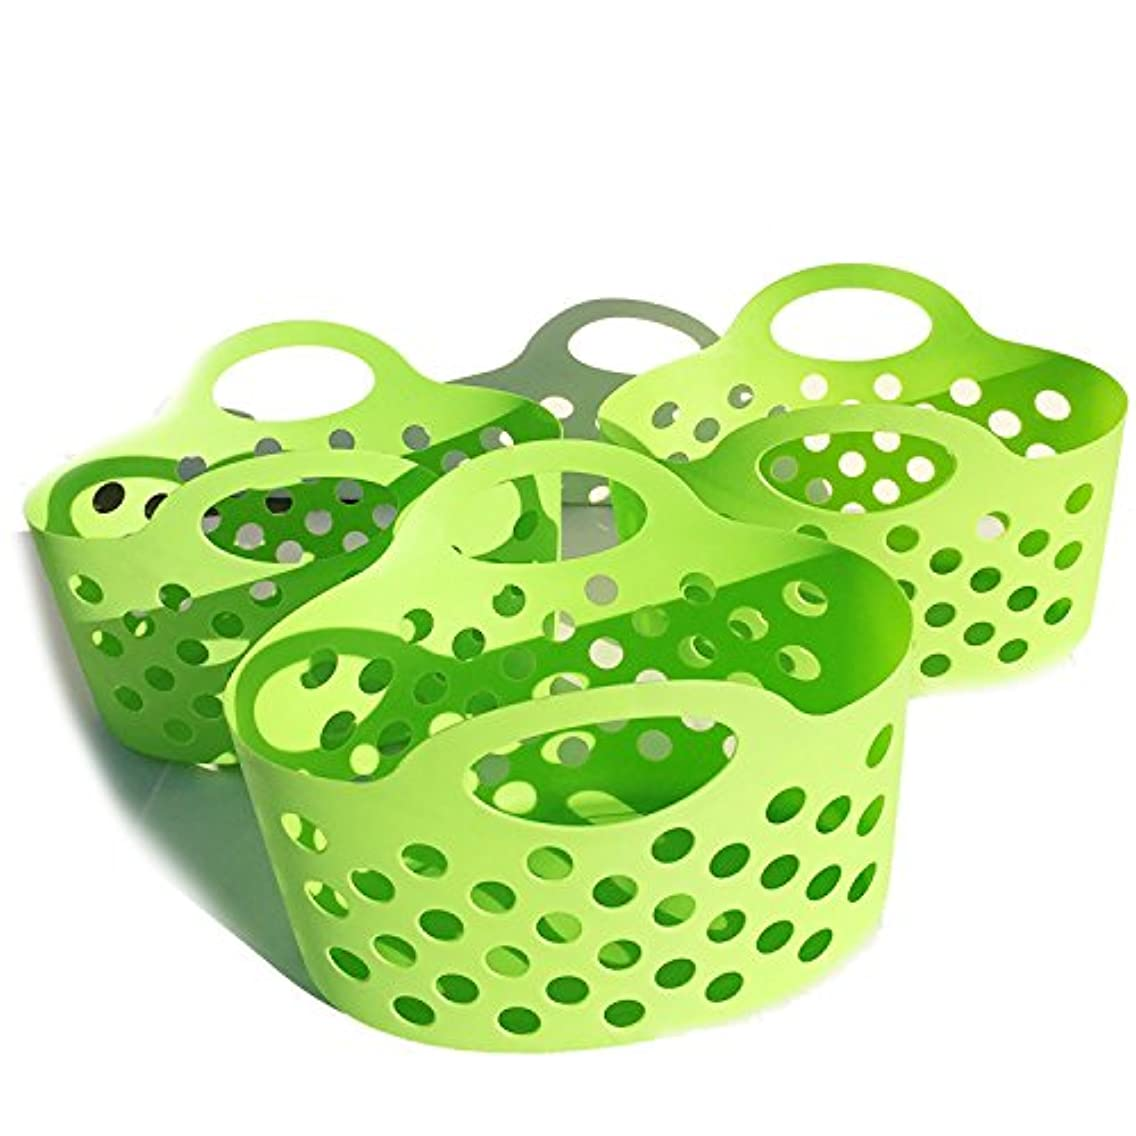 Plastic Basket For Shelves Bathroom Caddy Flexible Oval Baskets Classroom Storage Organizing with Handles Small Toys Kitchen Fruit Holder Green Lightweight School Home Shelf Organizer Set of 3 Pack